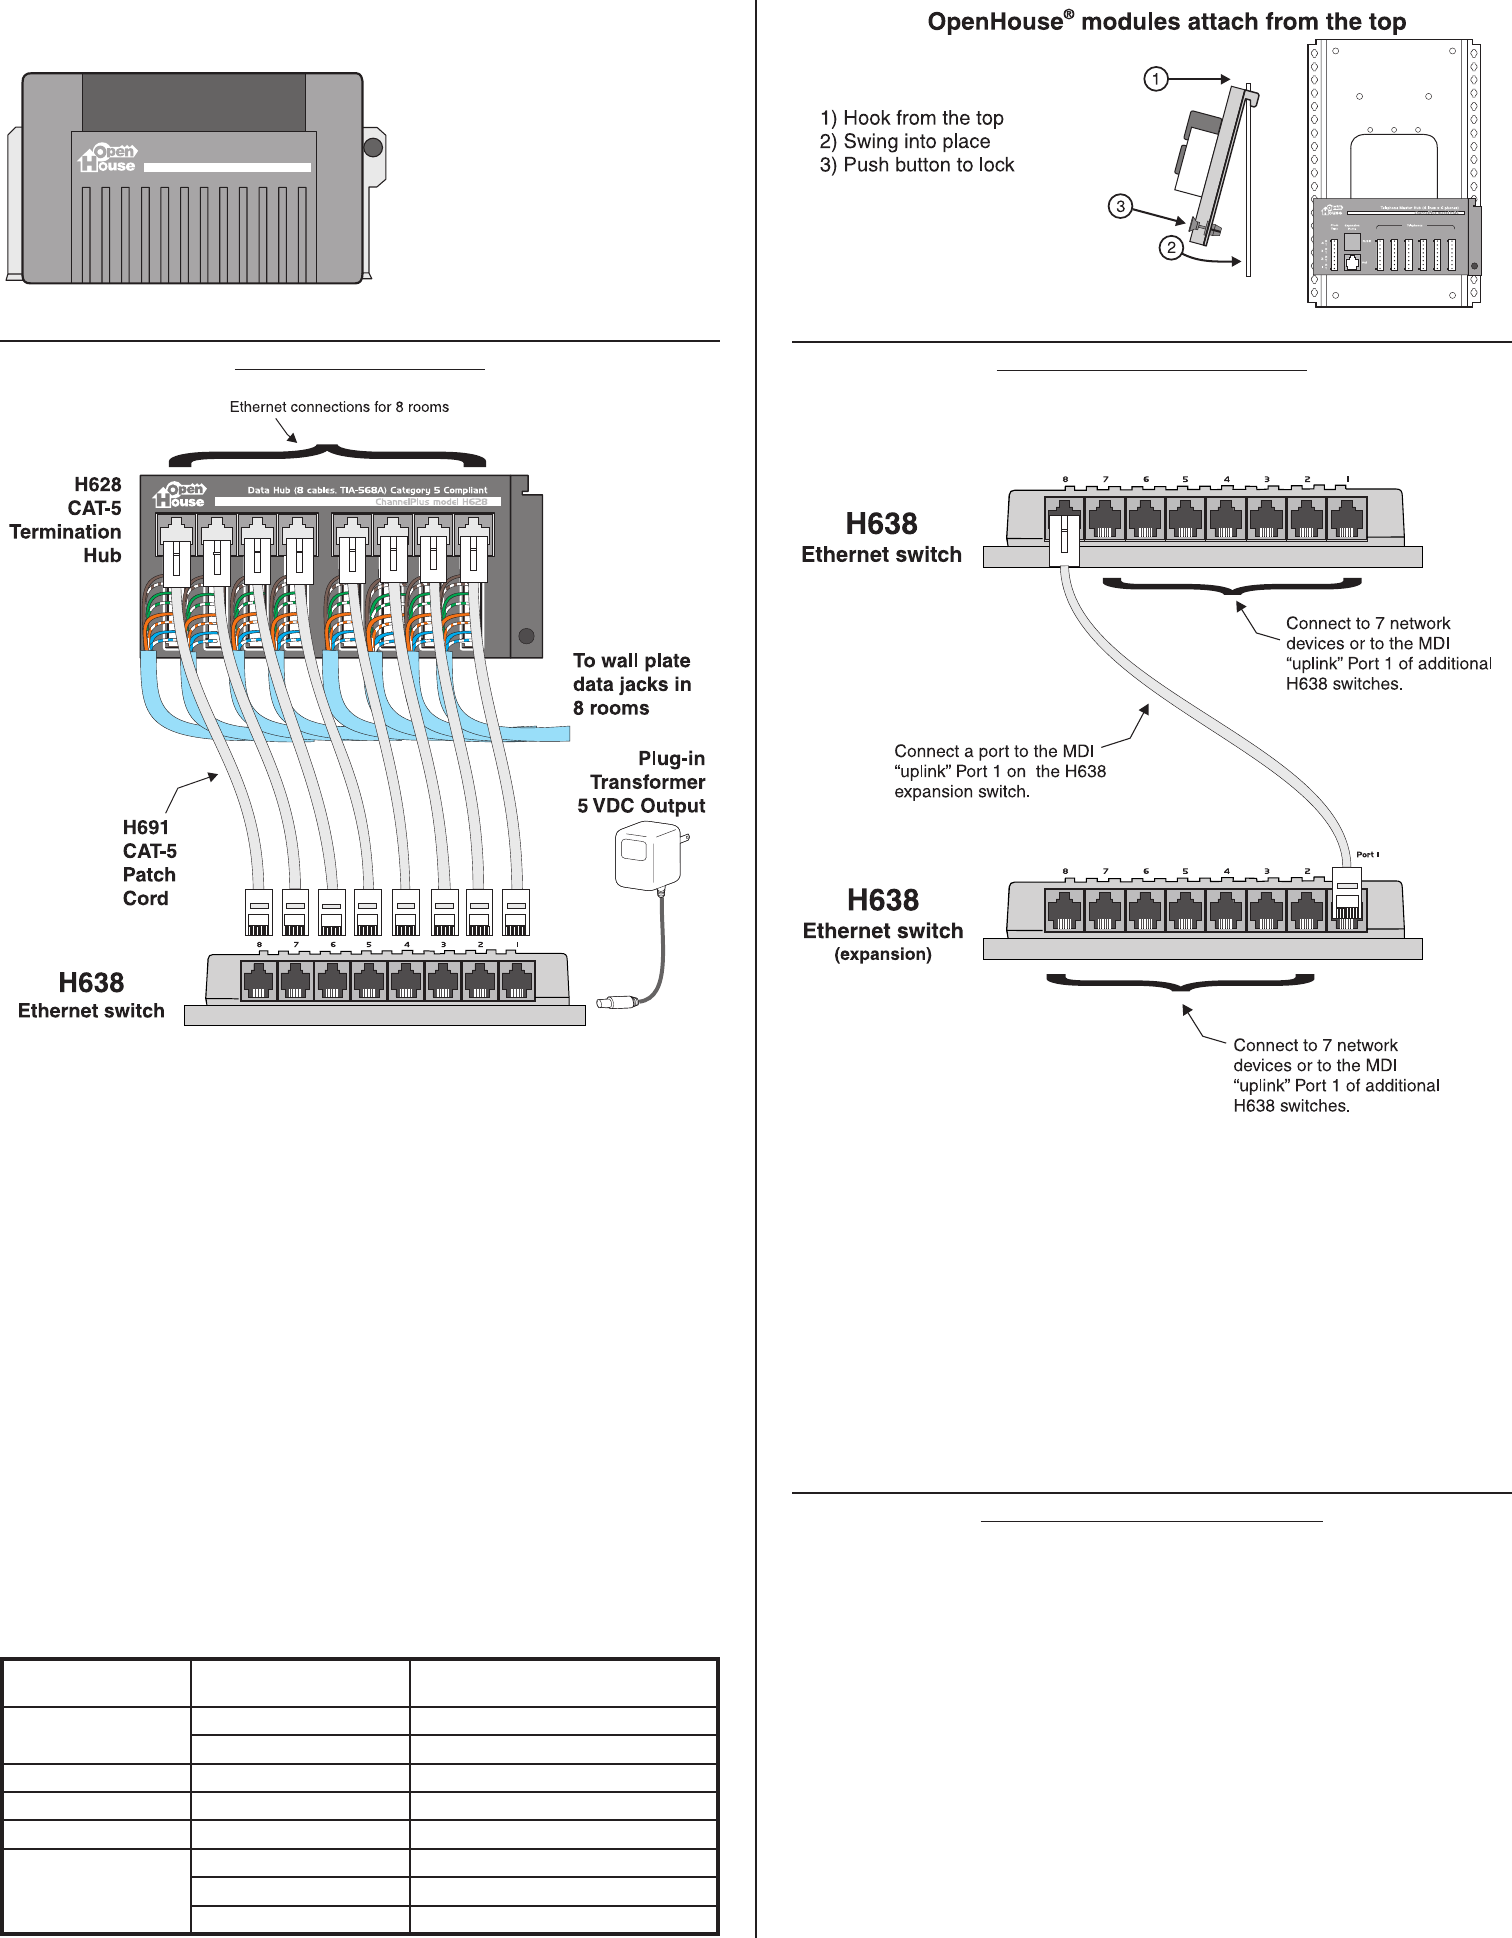 hight resolution of linear h638 owners manual 222317athe h638 10 100 ethernet switch creates a home network between up